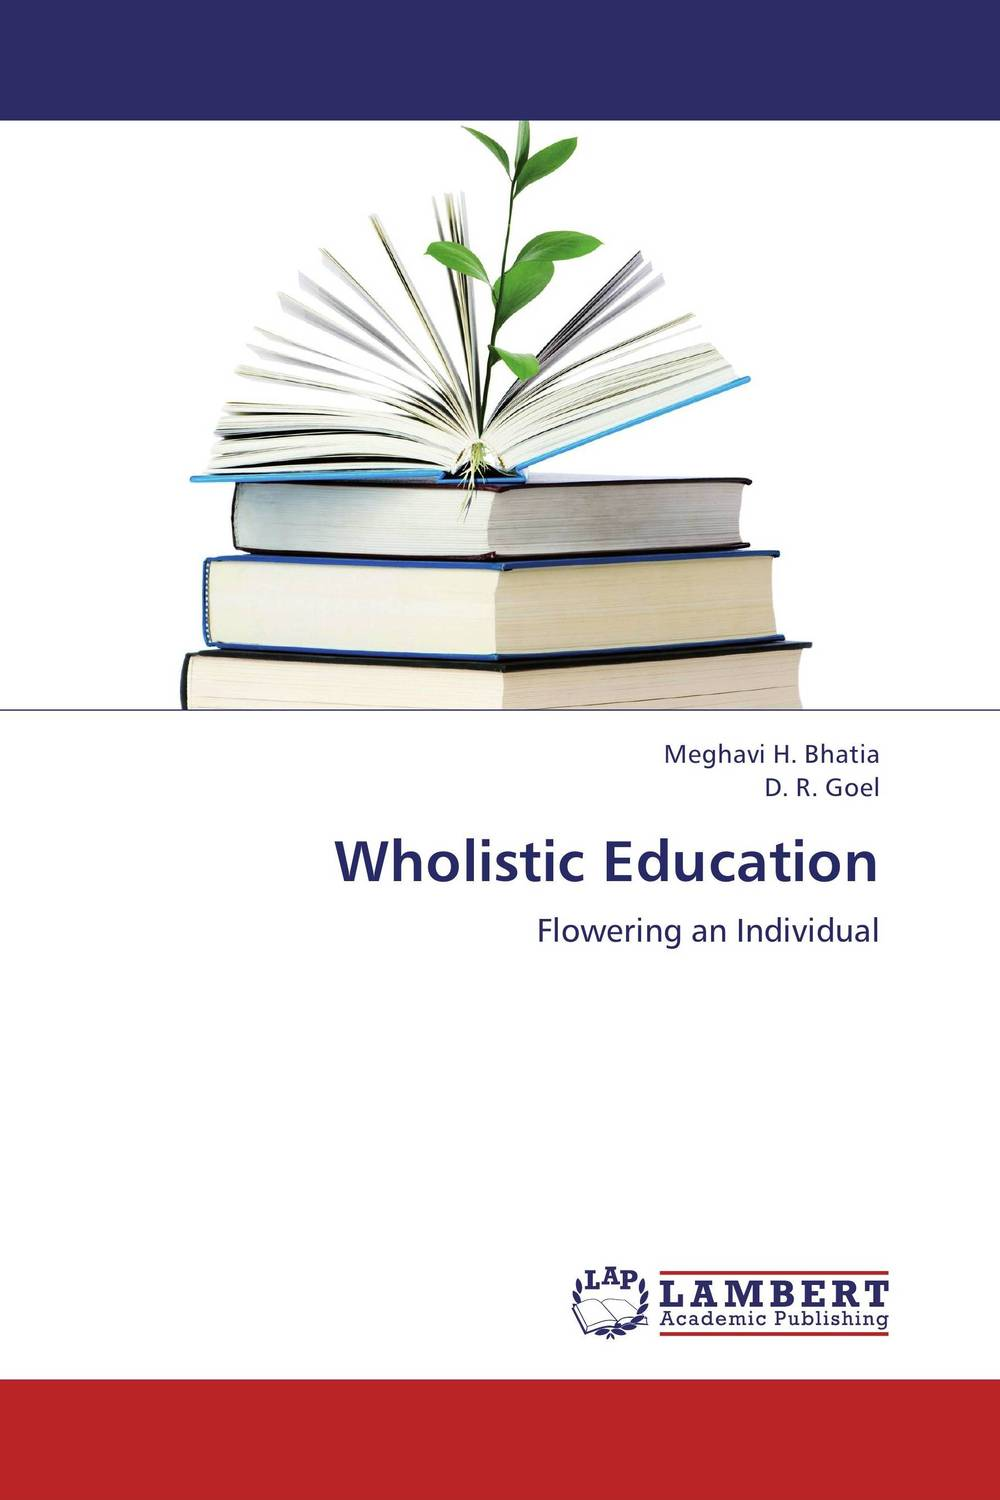 Wholistic Education reflective approach to education